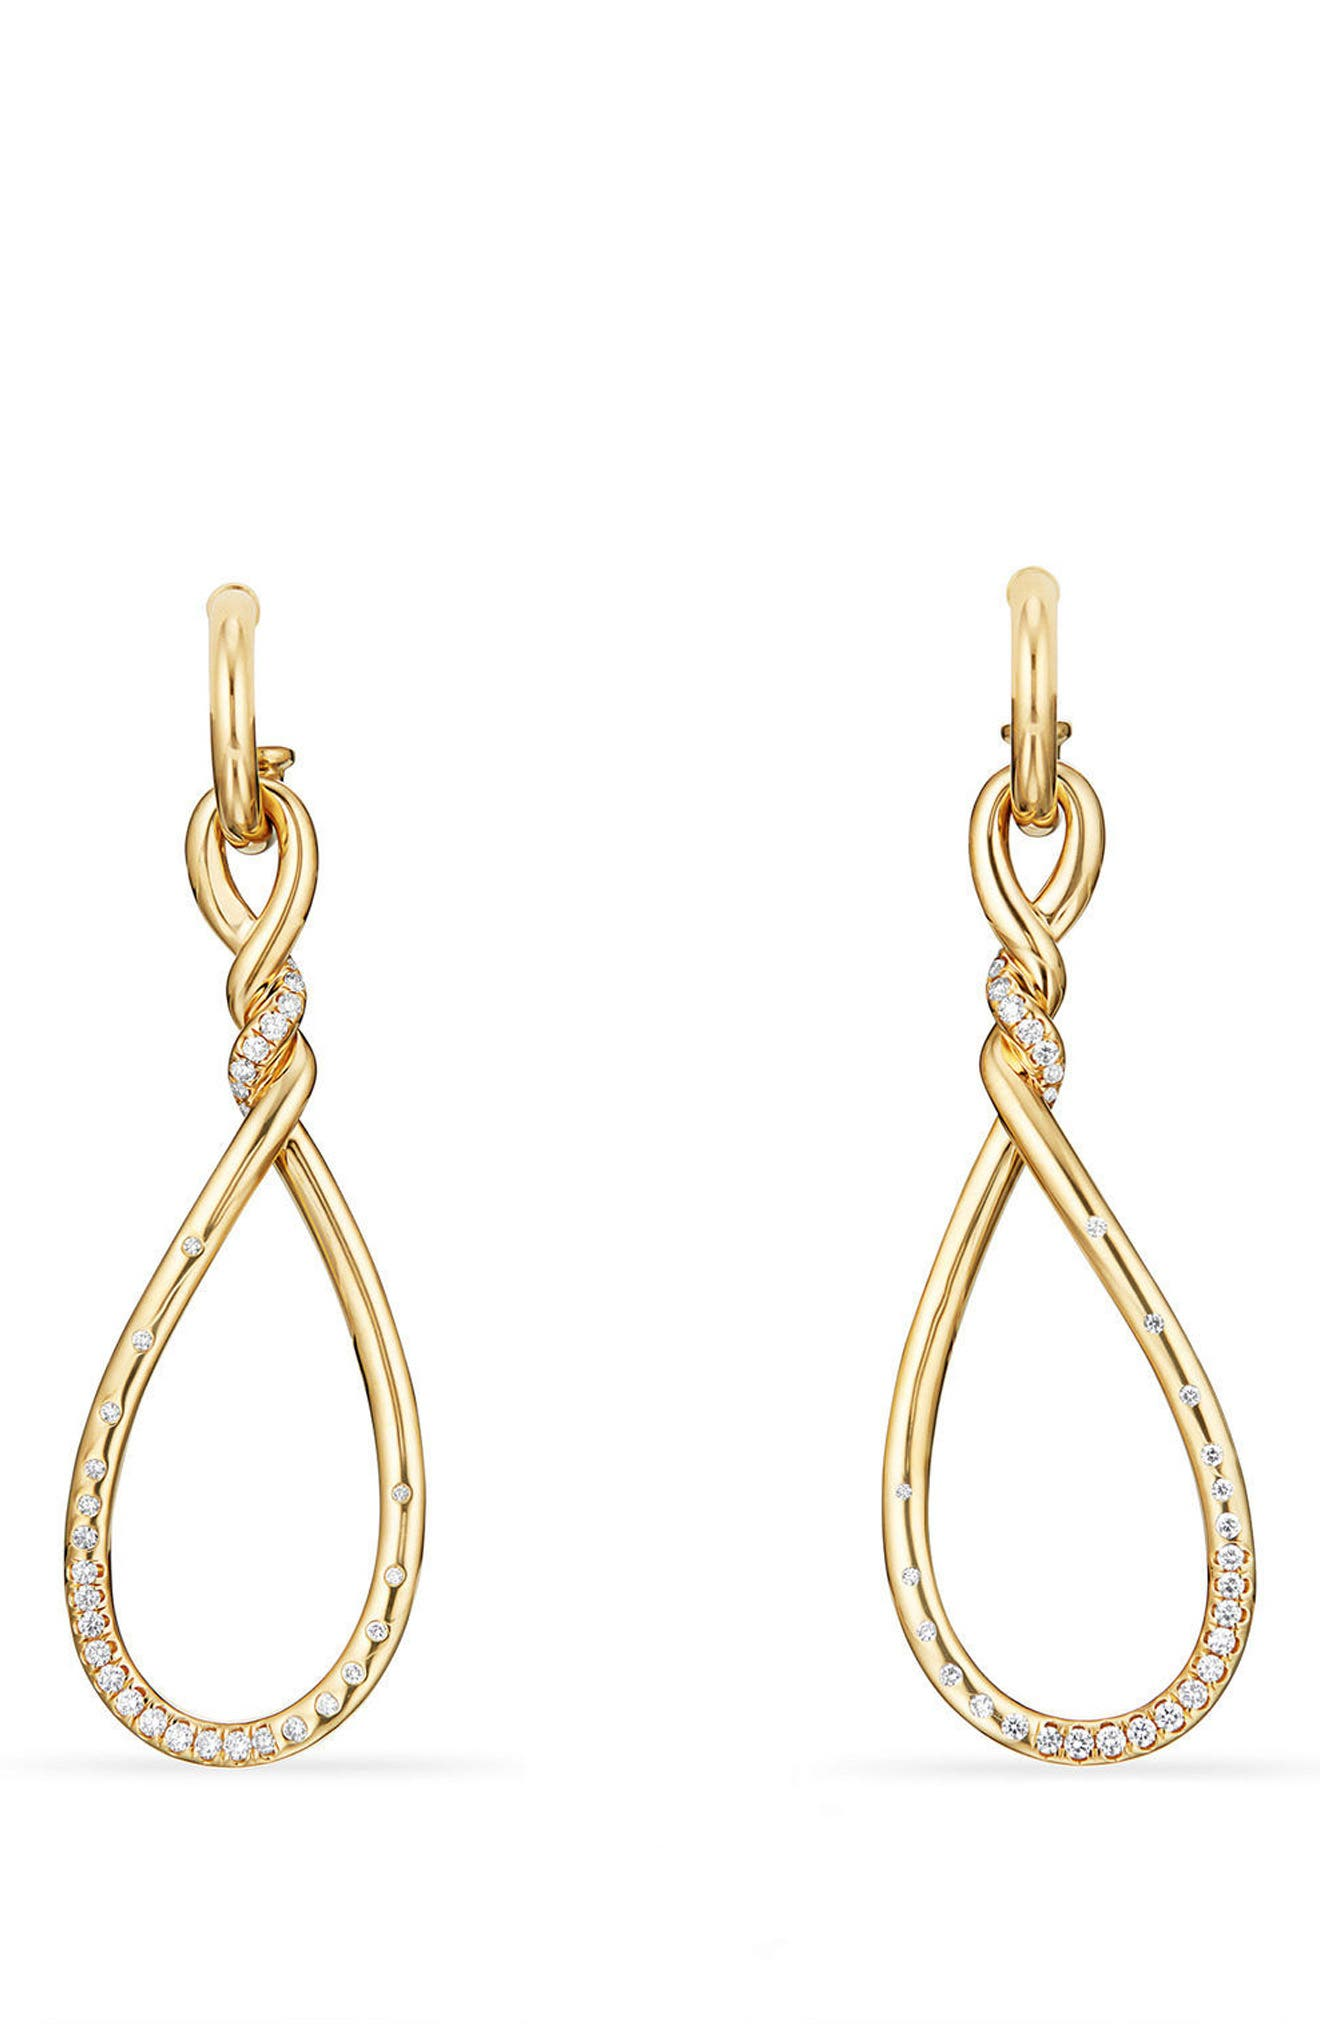 Main Image - David Yurman Continuance Large Drop Earrings with Diamonds in 18K Gold